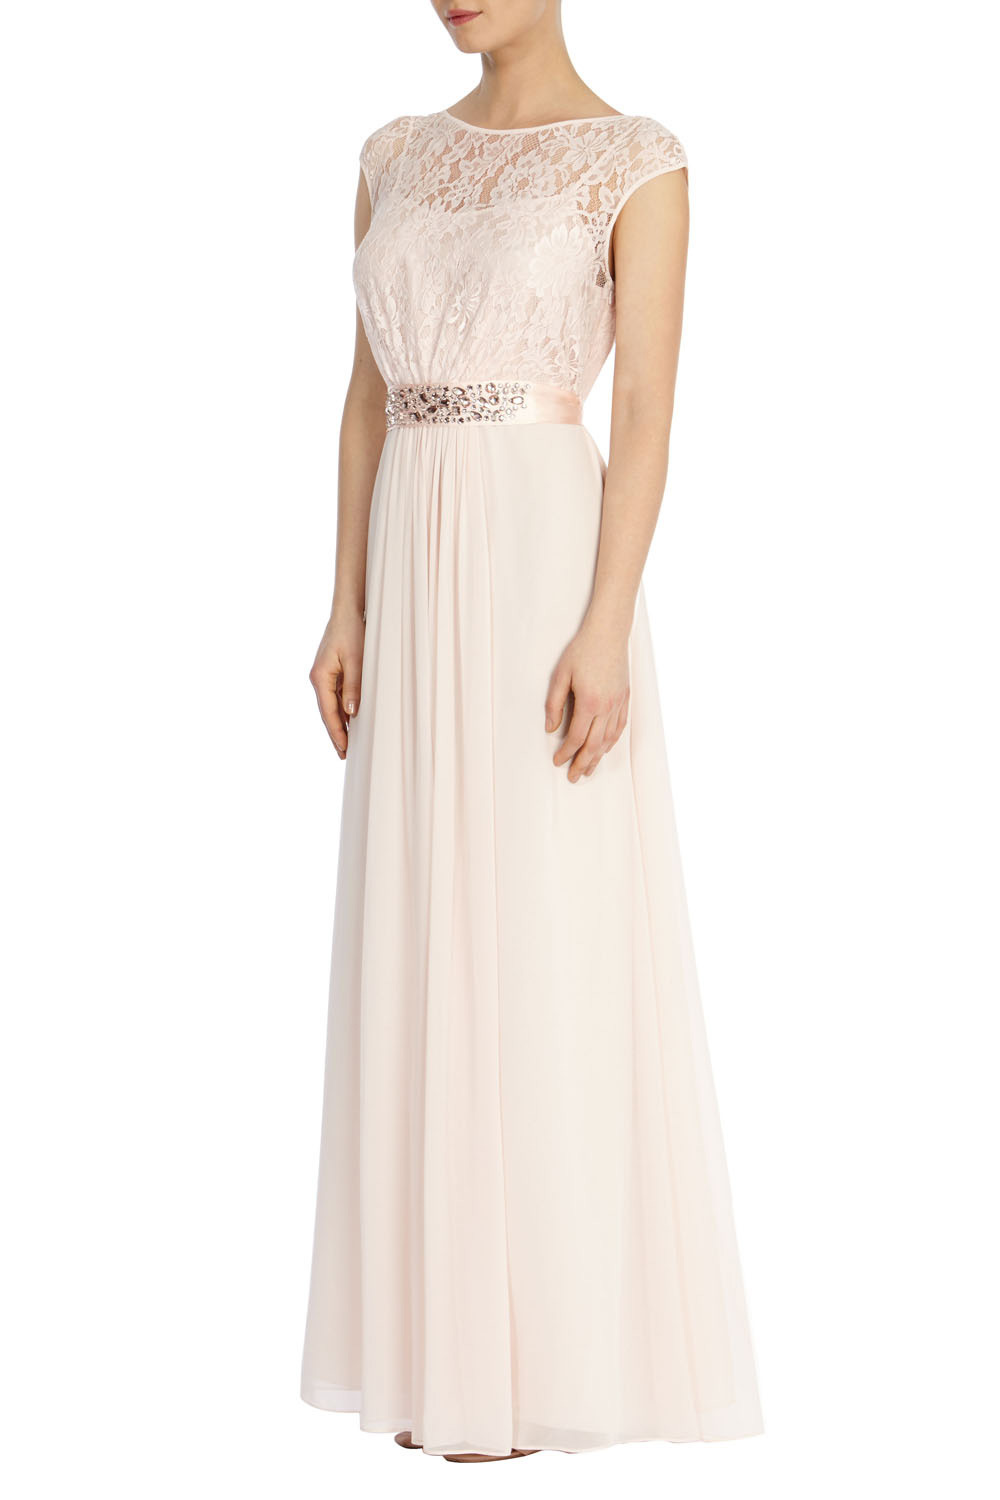 Lori Lee Lace Maxi Dress Sl - neckline: slash/boat neckline; sleeve style: capped; pattern: plain; style: maxi dress; predominant colour: blush; length: floor length; fit: fitted at waist & bust; fibres: polyester/polyamide - 100%; occasions: occasion; waist detail: feature waist detail; back detail: keyhole/peephole detail at back; sleeve length: sleeveless; texture group: sheer fabrics/chiffon/organza etc.; pattern type: fabric; embellishment: lace; shoulder detail: sheer at shoulder; season: s/s 2016; wardrobe: event; embellishment location: top